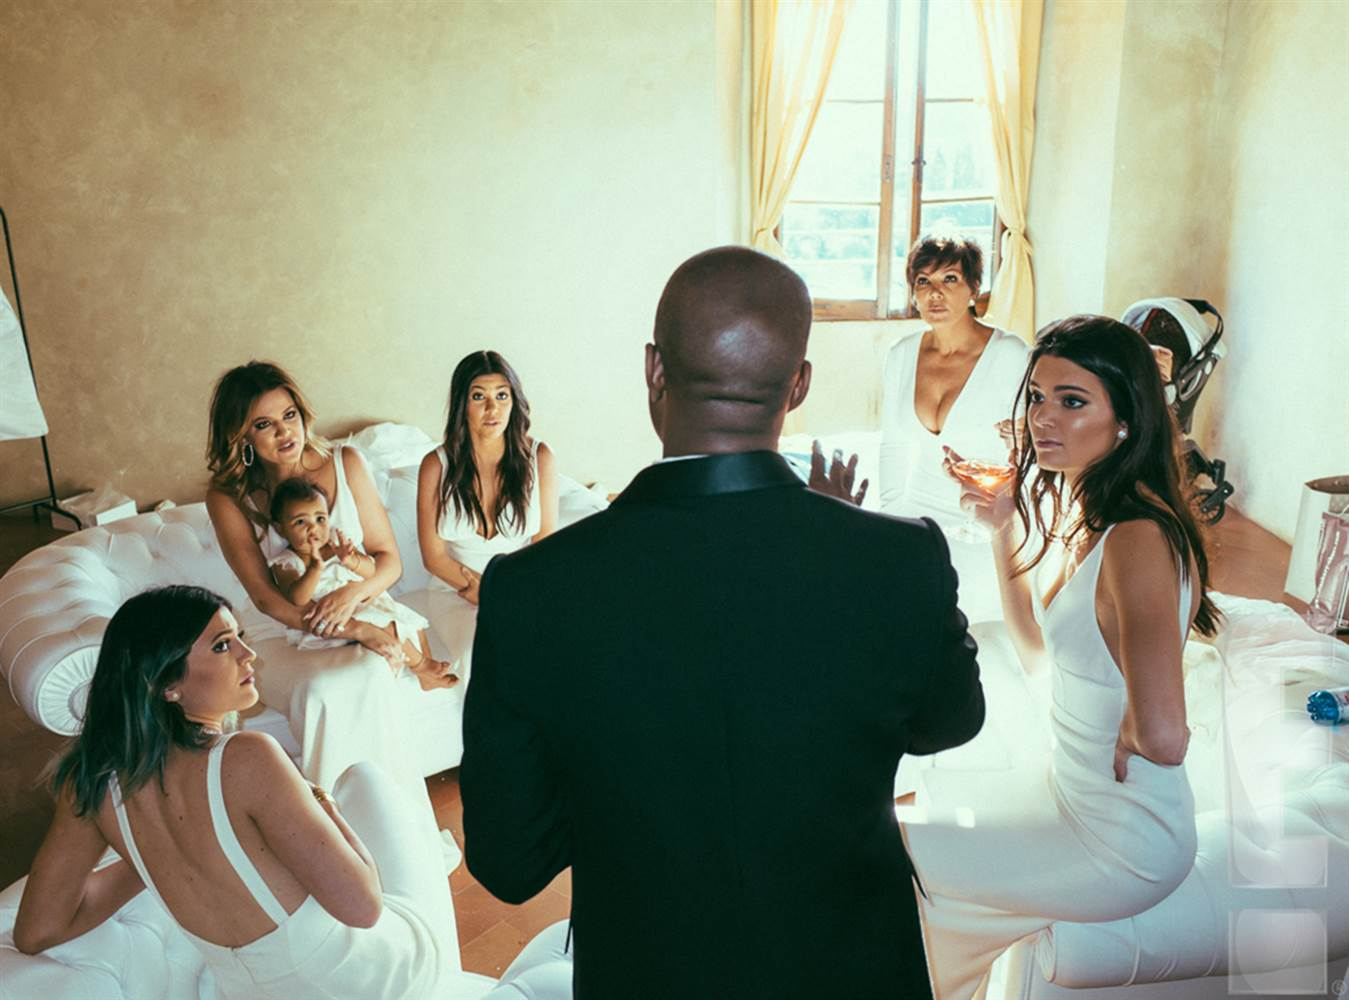 The Kardashian sisters (Kylie, Khloe, Kourtney, and Kendall) and Kris Jenner and North West at Kanye West and Kim Kardashian's wedding